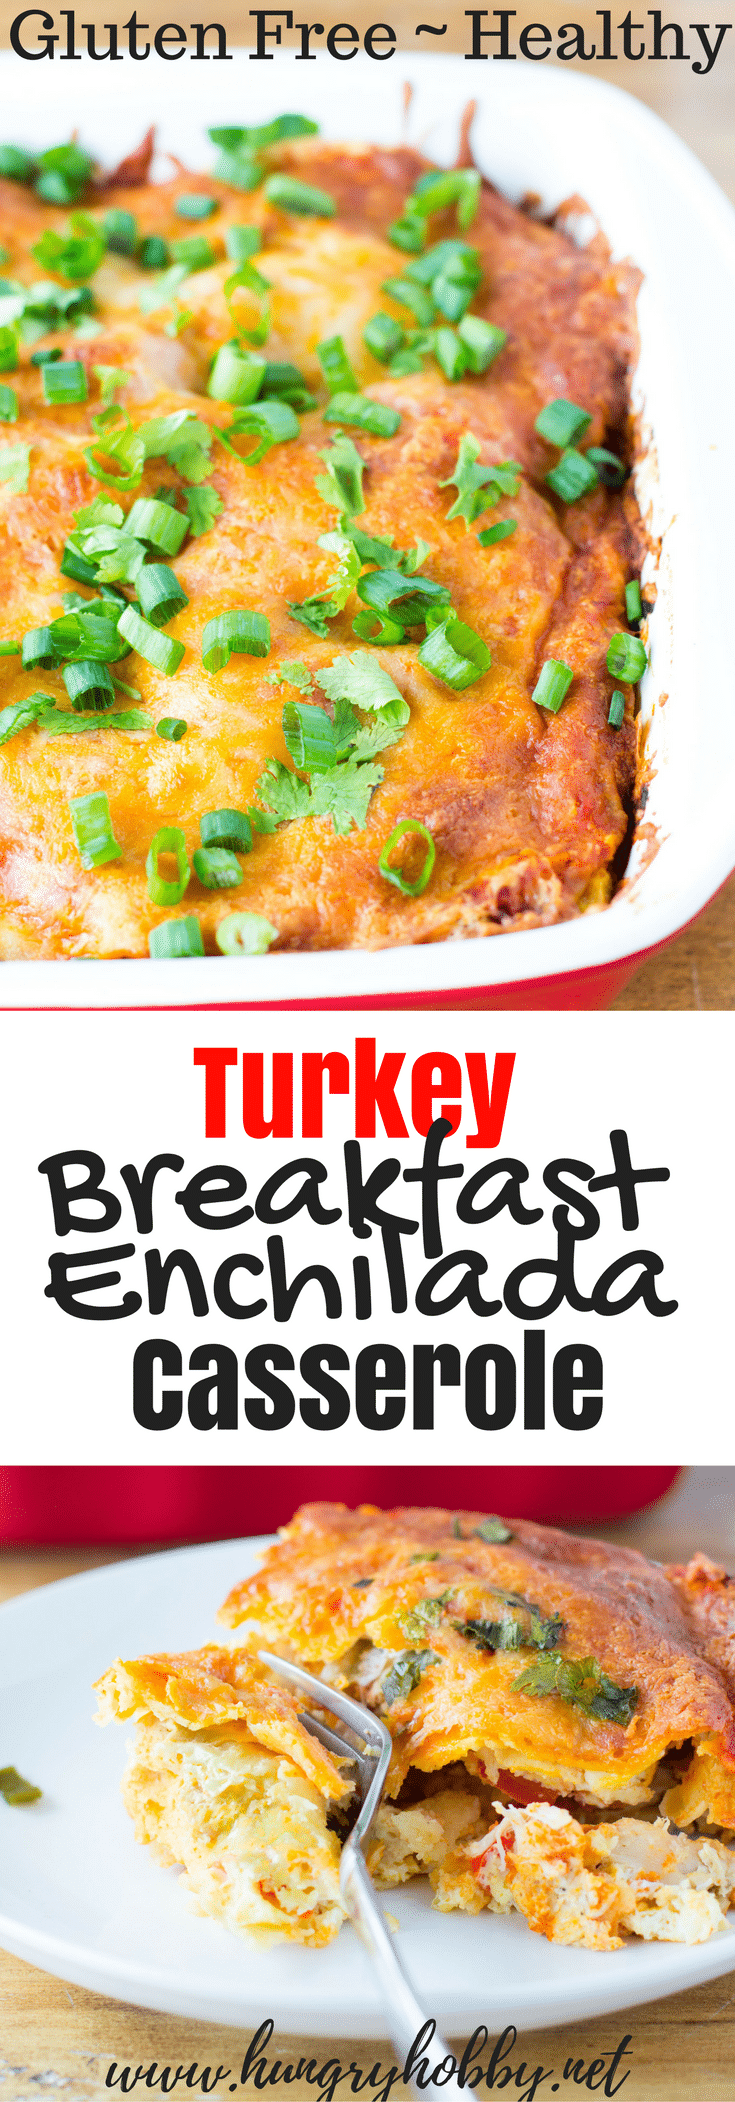 This gluten free breakfast turkey enchilada casserole is a delicious way to use up leftover turkey or to make with rotisserie chicken!